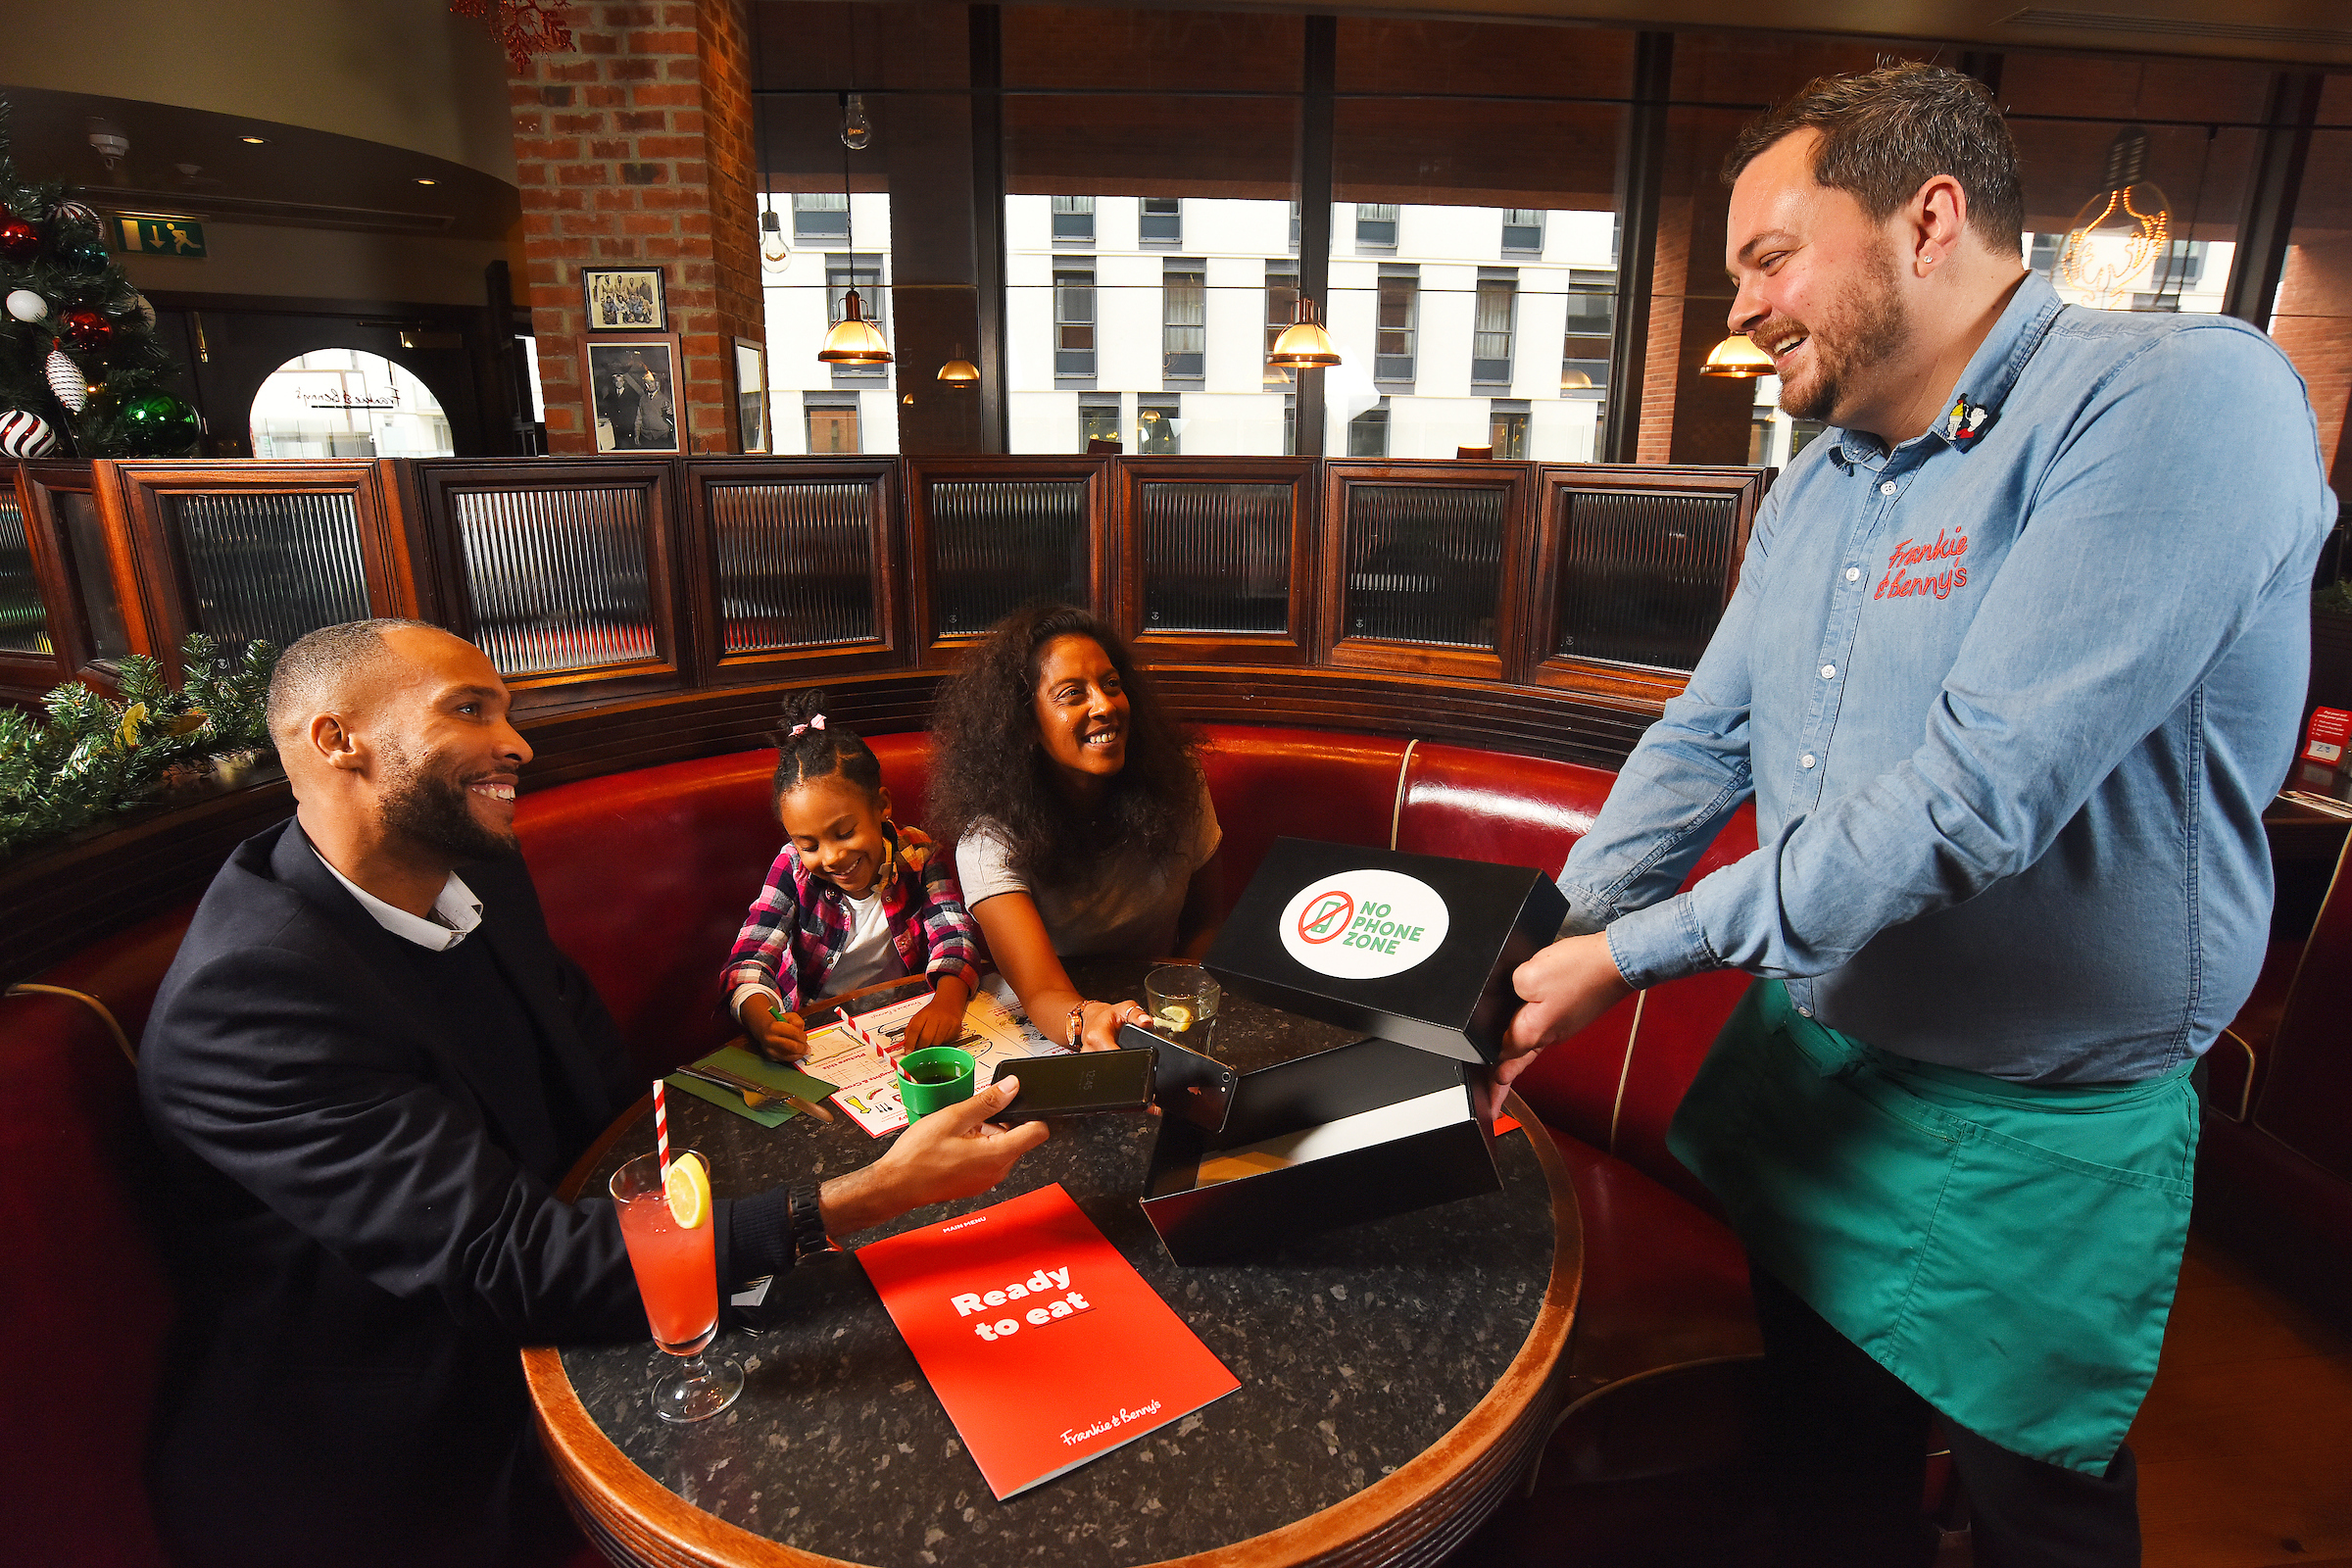 Frankie & Benny's has introduced no-phone zones in its 250 UK restaurants - where diners are encouraged to place their devices in a box on arrival at the table and free children's meals are offered as an incentive.